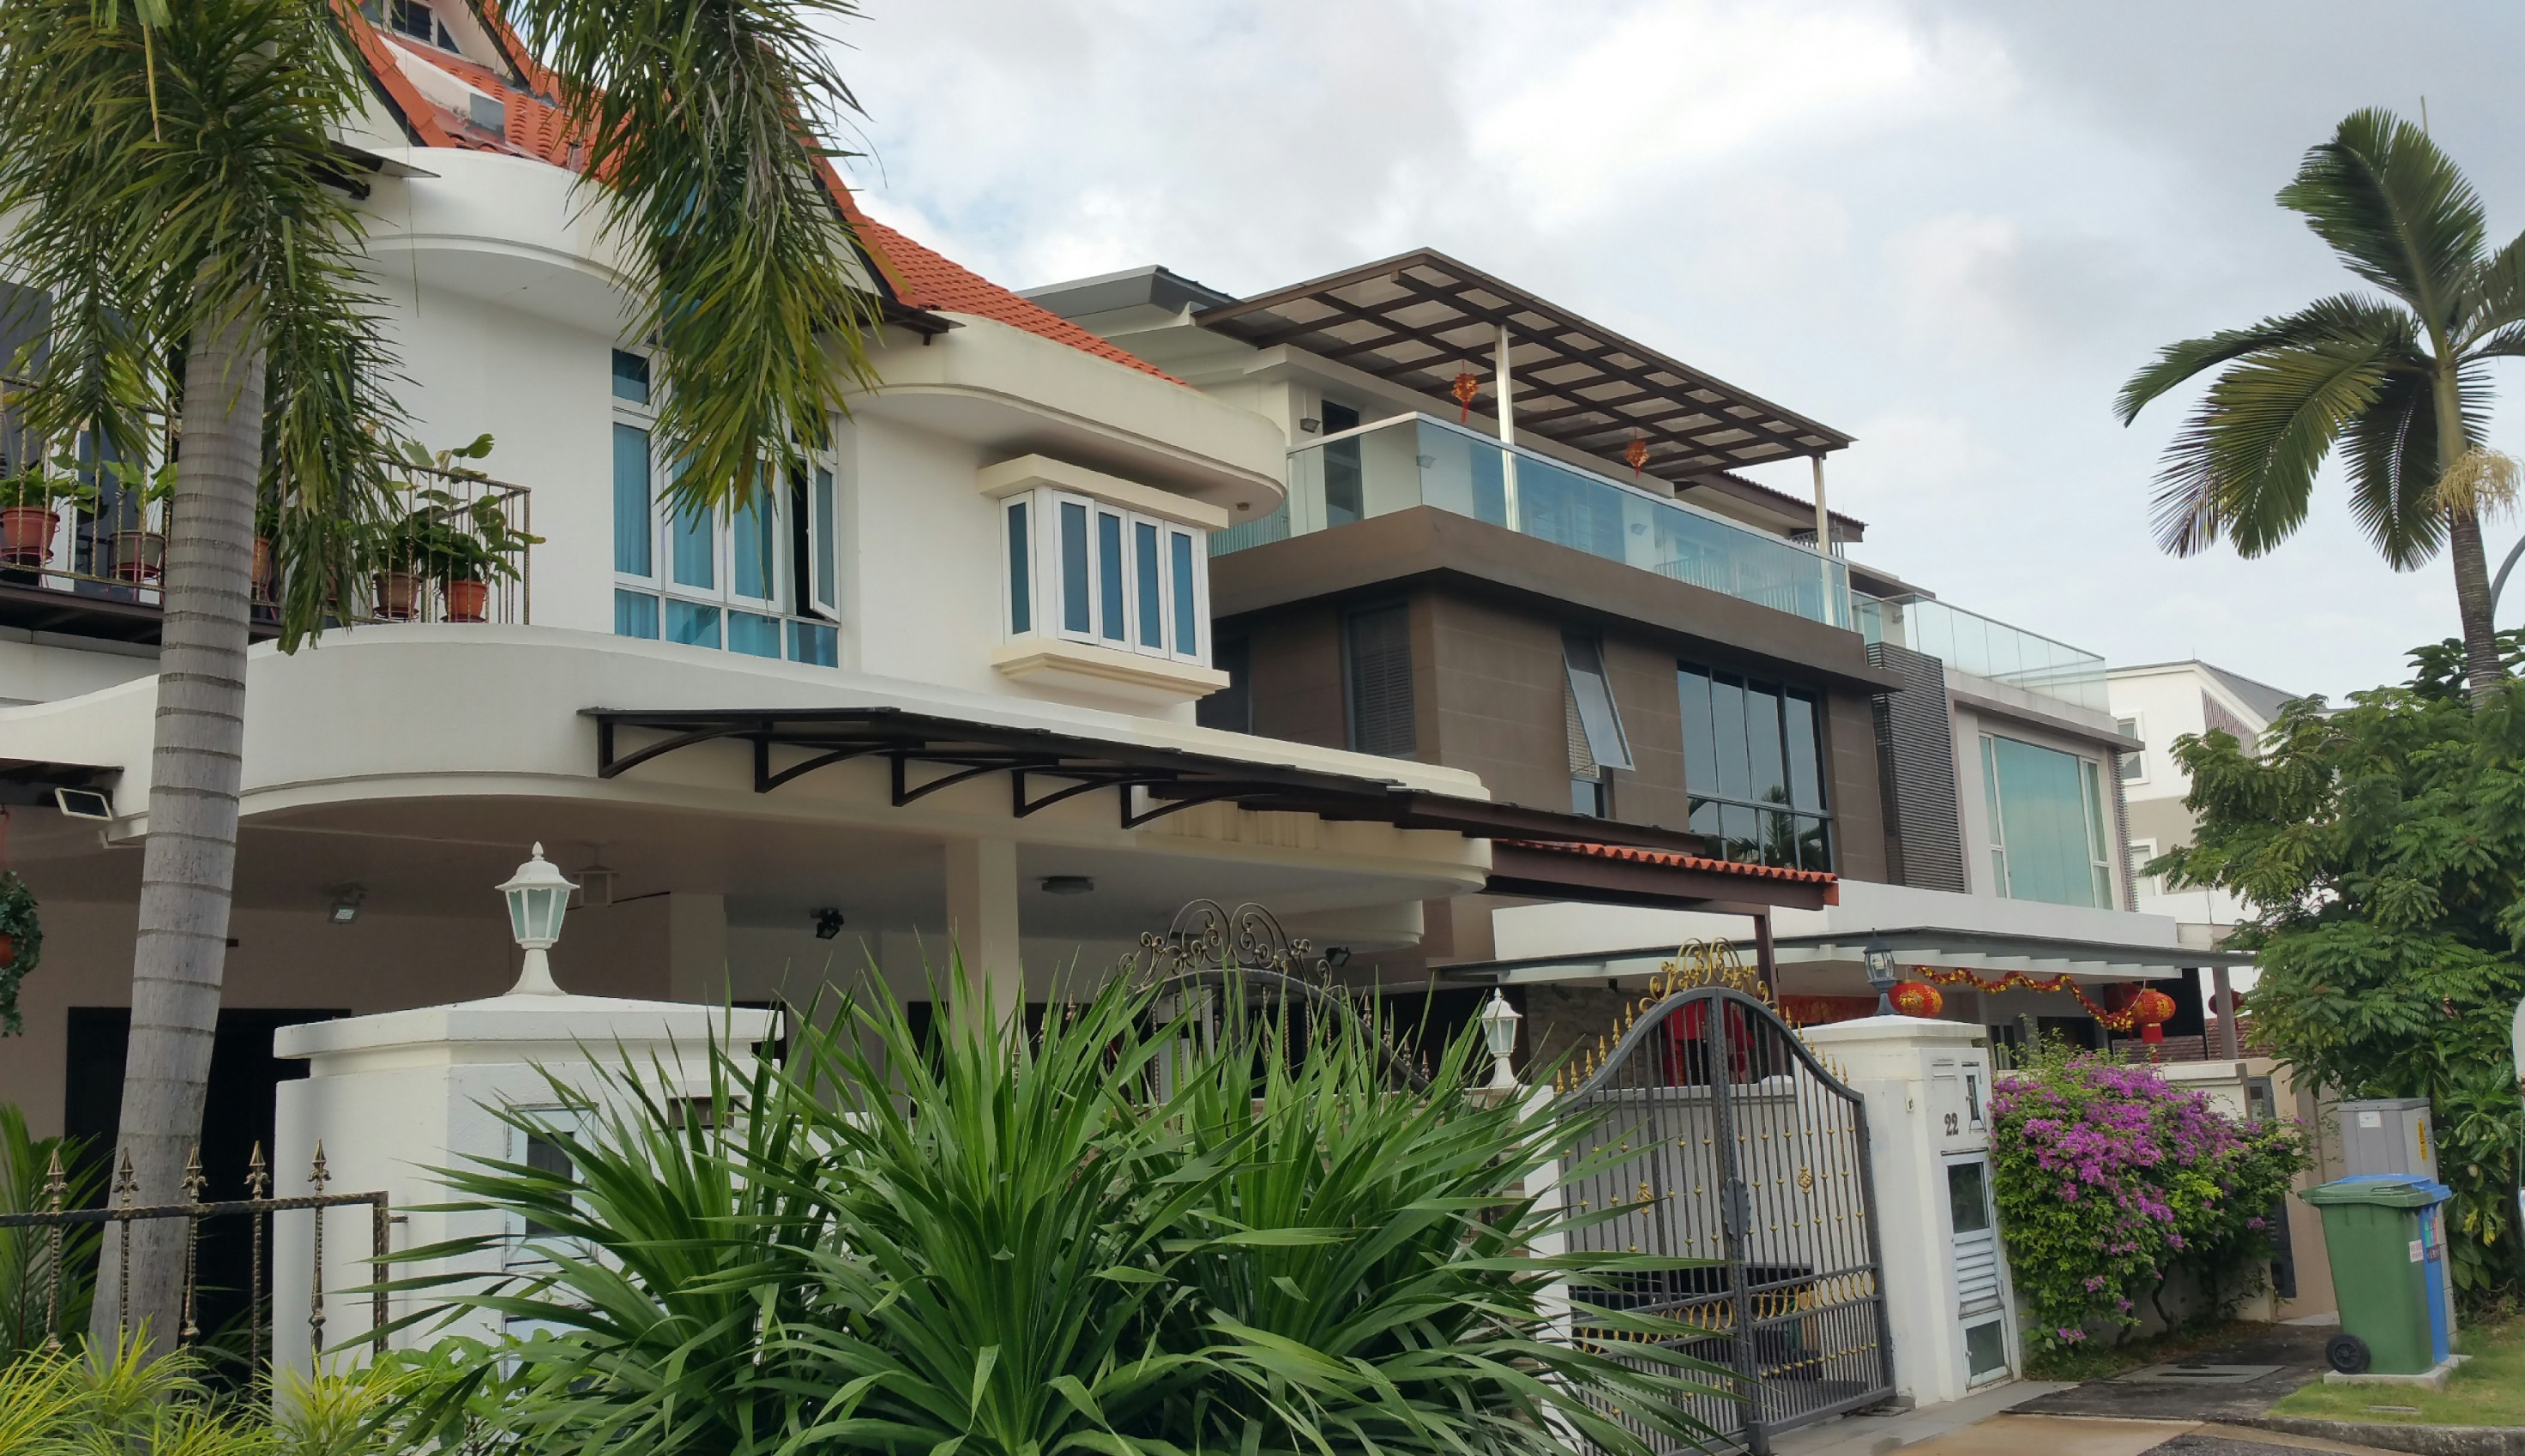 Terrace house renovation wuxing construction pte ltd for How to get your house renovated for free